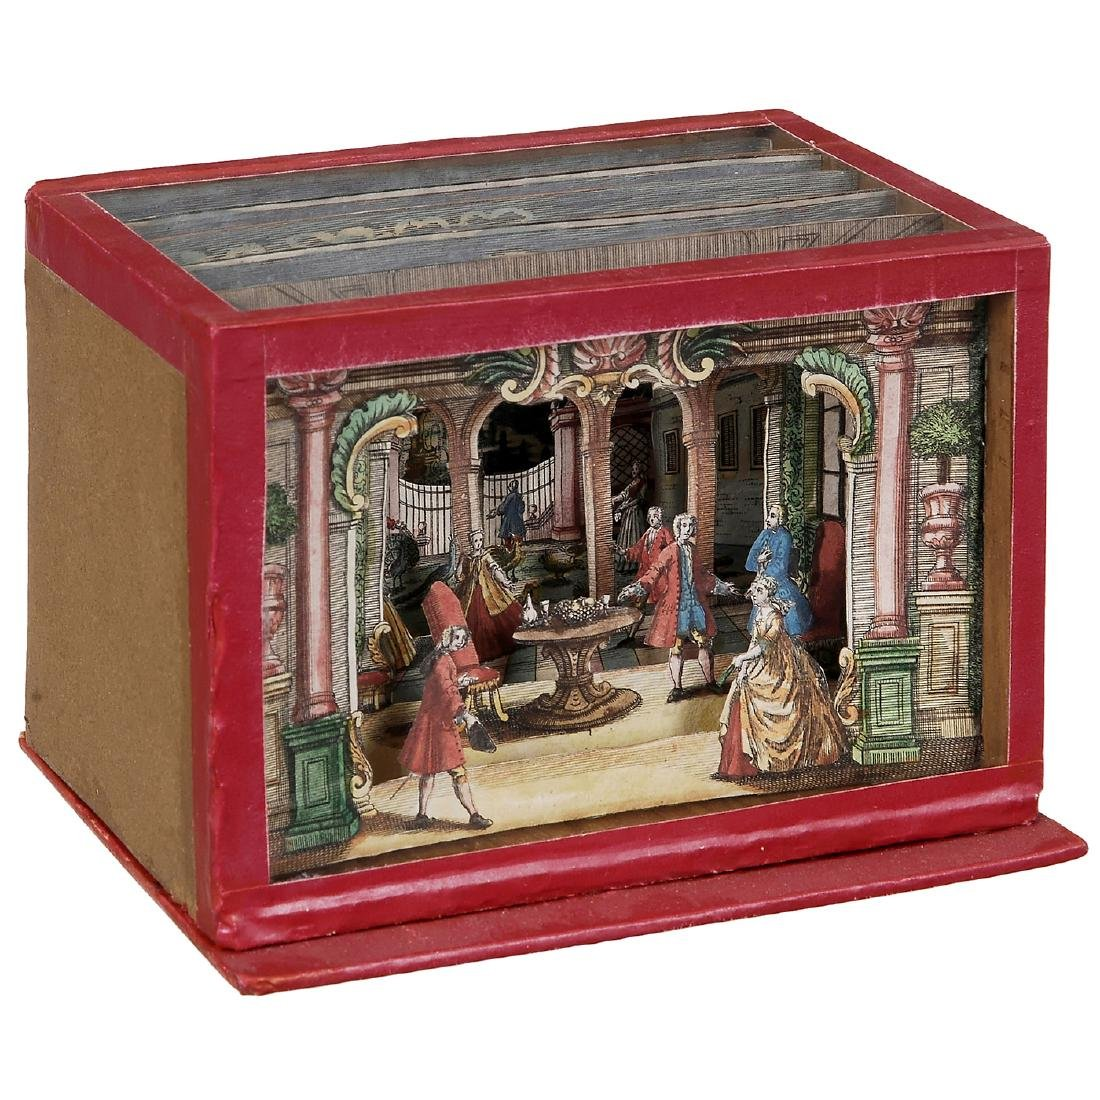 Perspective View Box Diorama, c. 1850-70 - 2